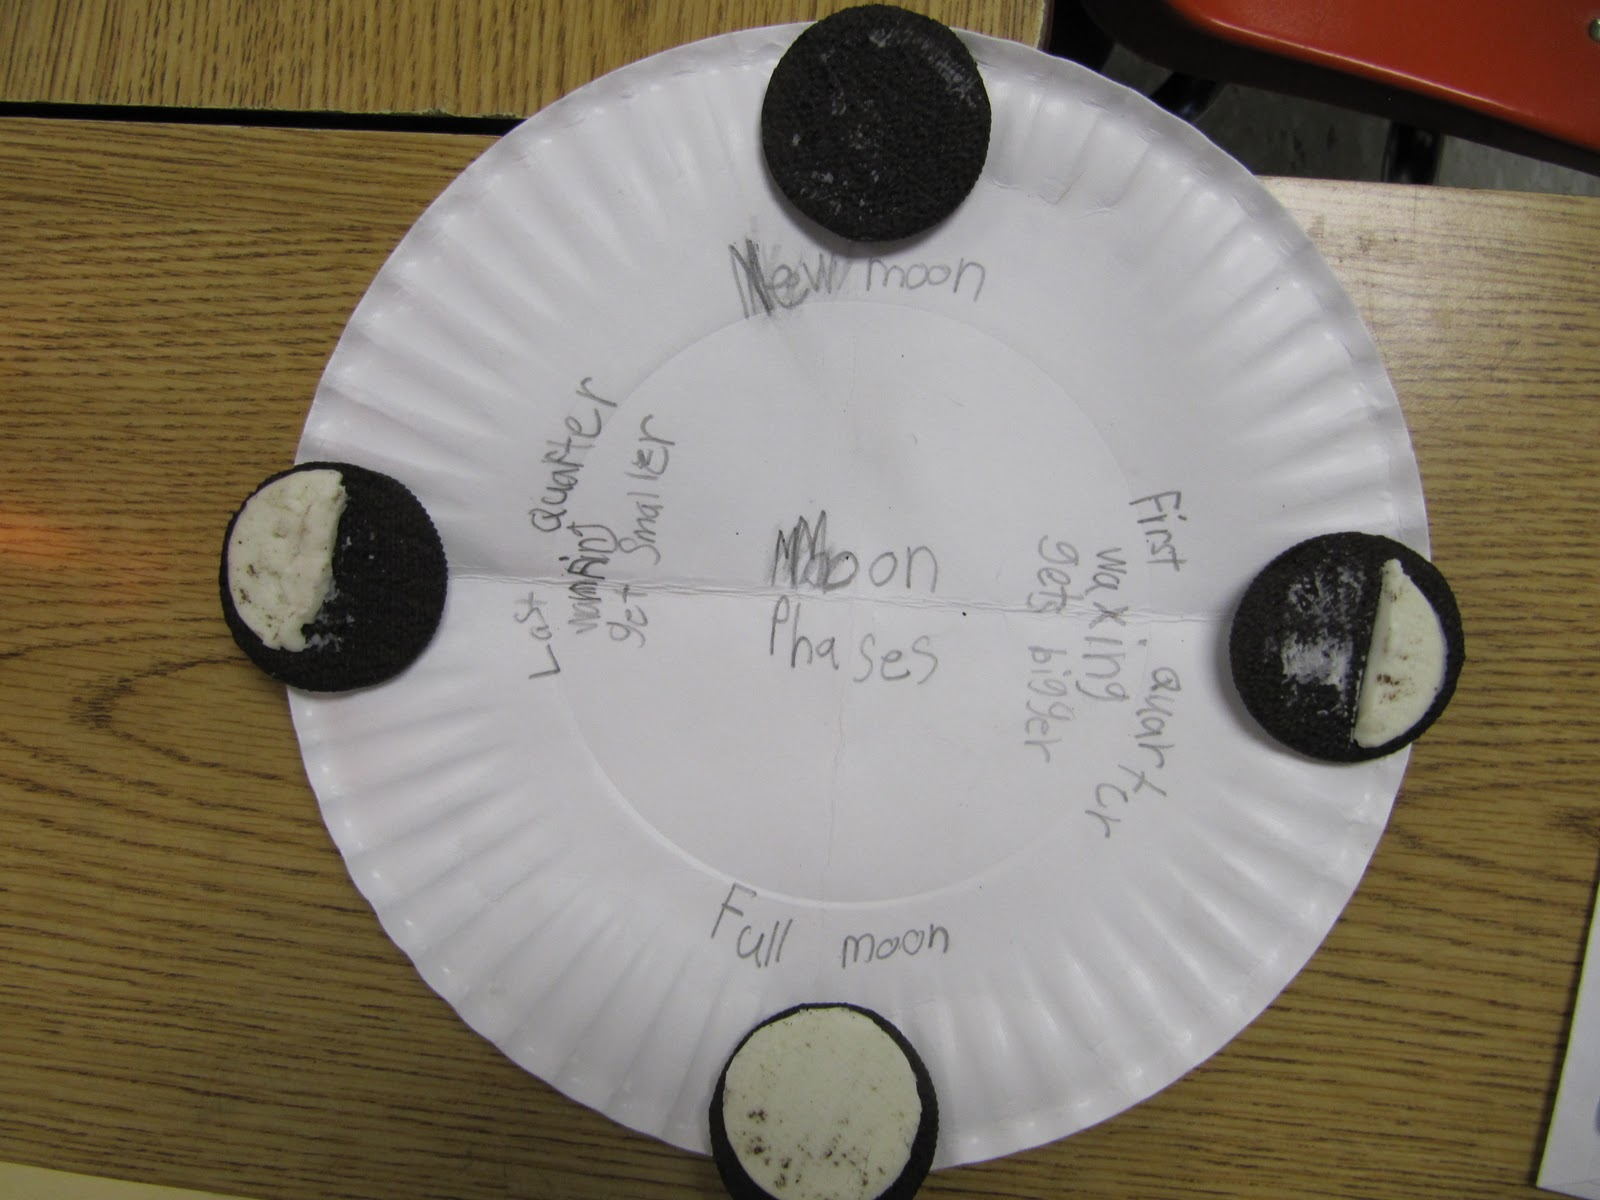 Mrs Samuelson S Swamp Frogs Phases Of The Moon